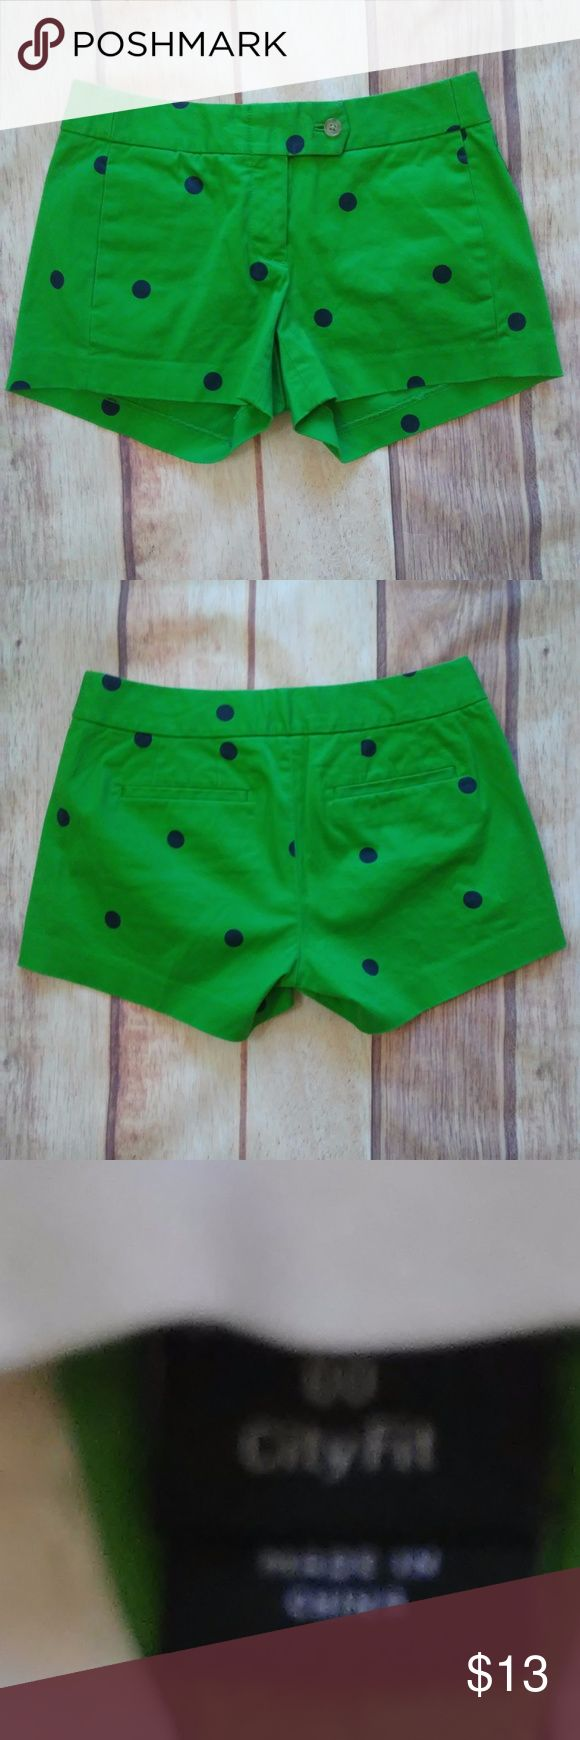 """J.Crew City Fit Stretch Size 00 Green/Blue Like new condition, Measures as 14"""" Waist lying flat across, 10"""" Length 97% cotton, 3% Spandex All measurements are taken lying flat. No rips stains tears or flaws, Colors may vary from screen to screen. (Bin-E) J Crew Shorts"""